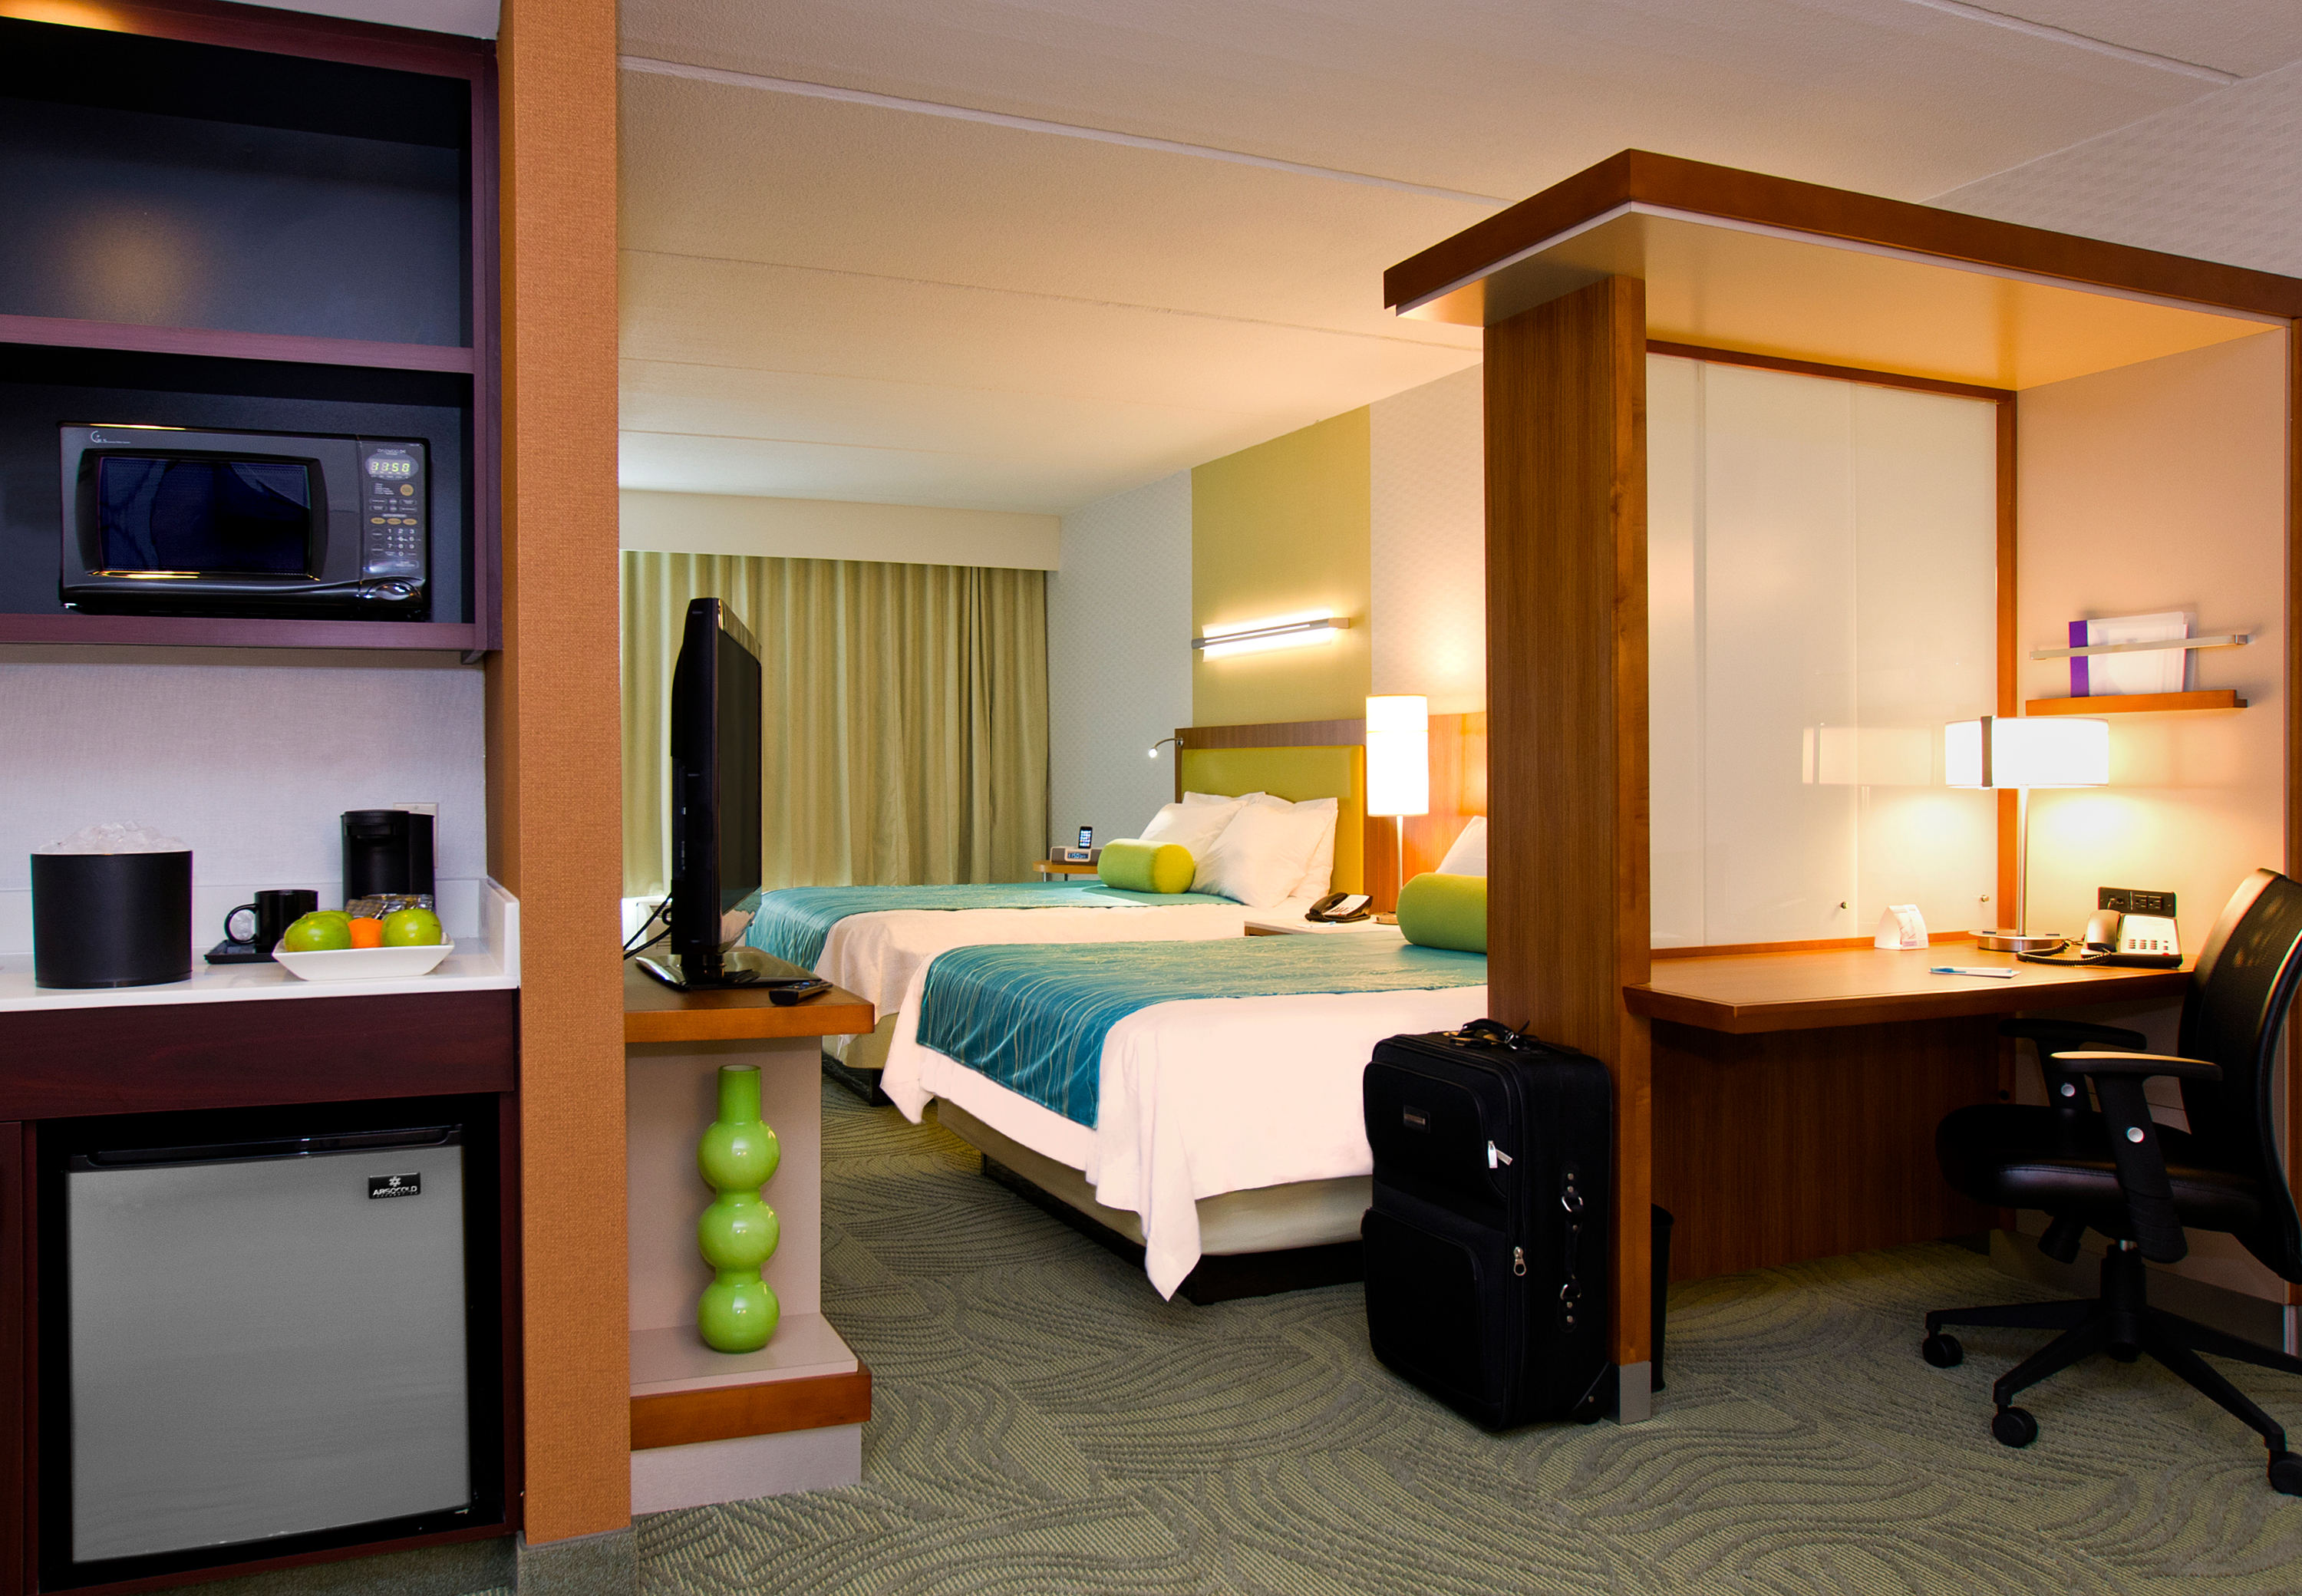 SpringHill Suites by Marriott San Antonio Alamo Plaza/Convention Center image 11